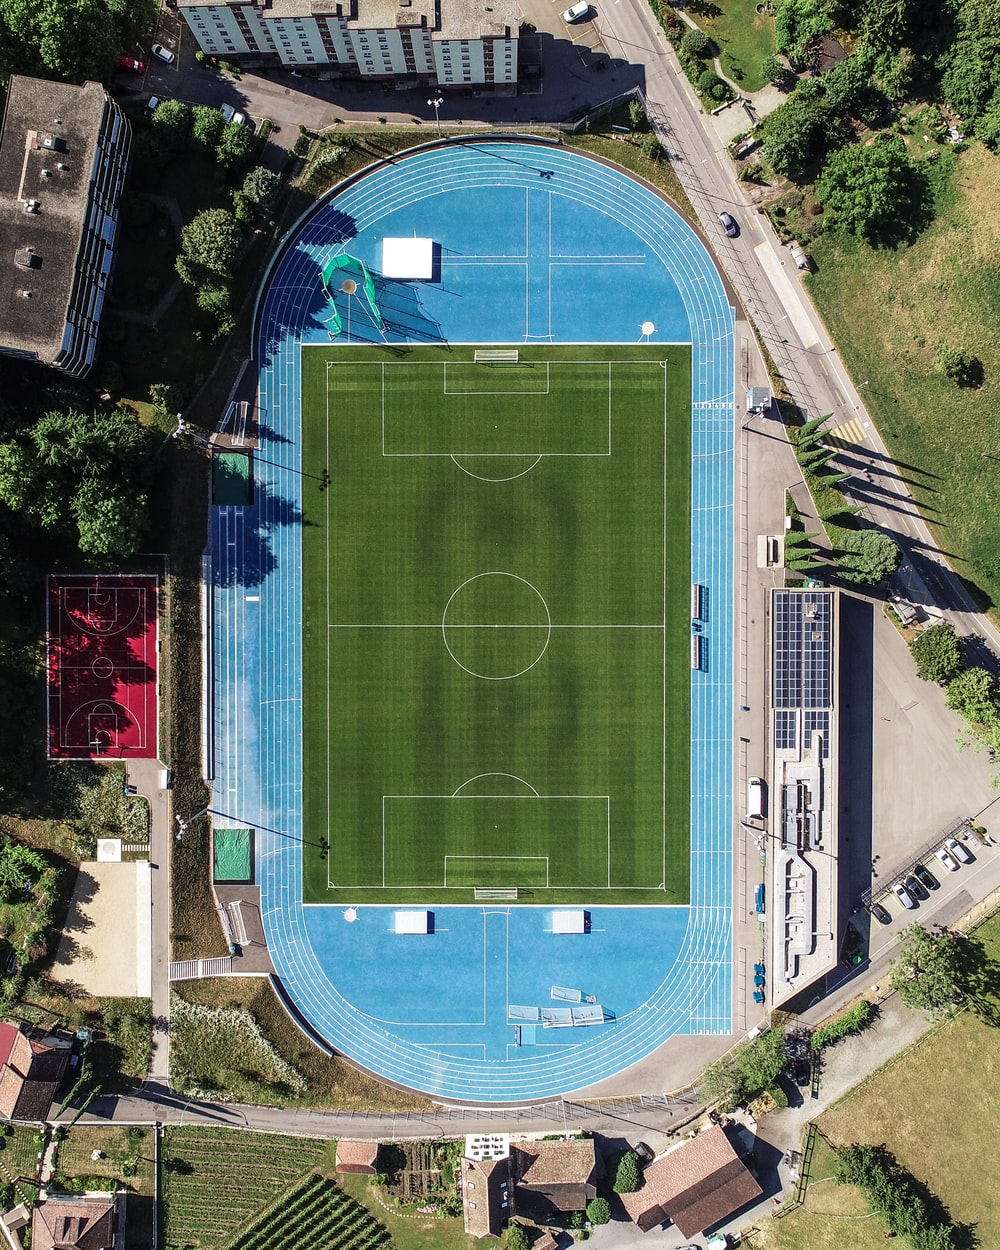 aerial photography of American football stadium at daytime